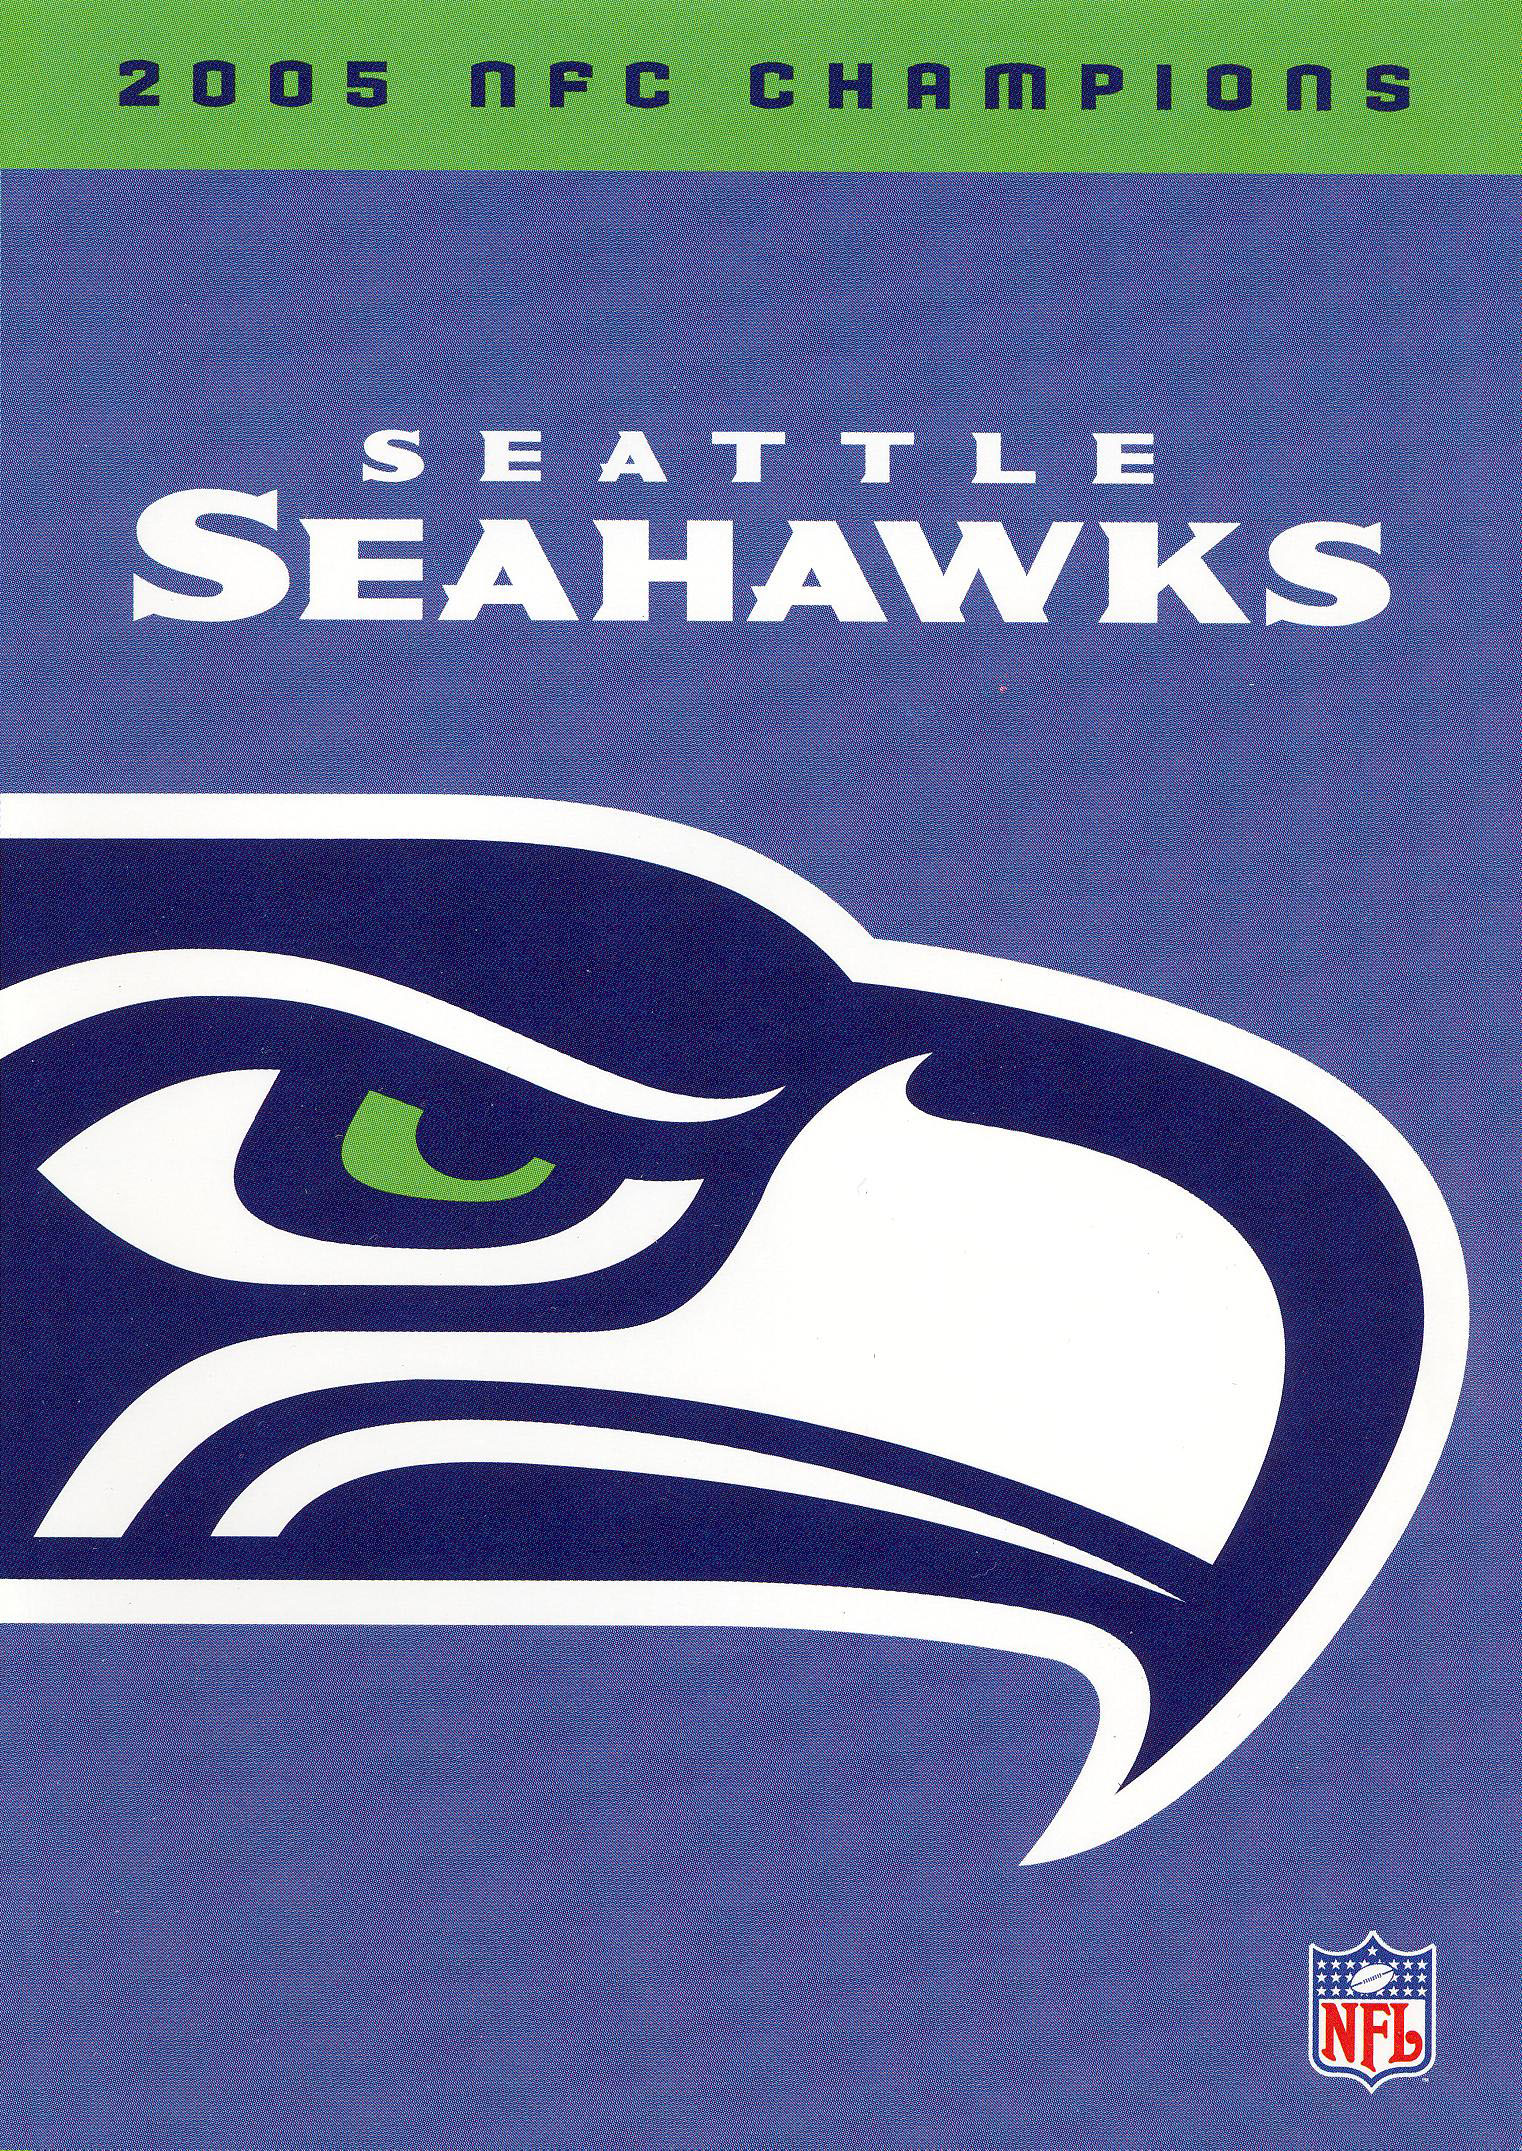 NFL: Seattle Seahawks NFC Champions